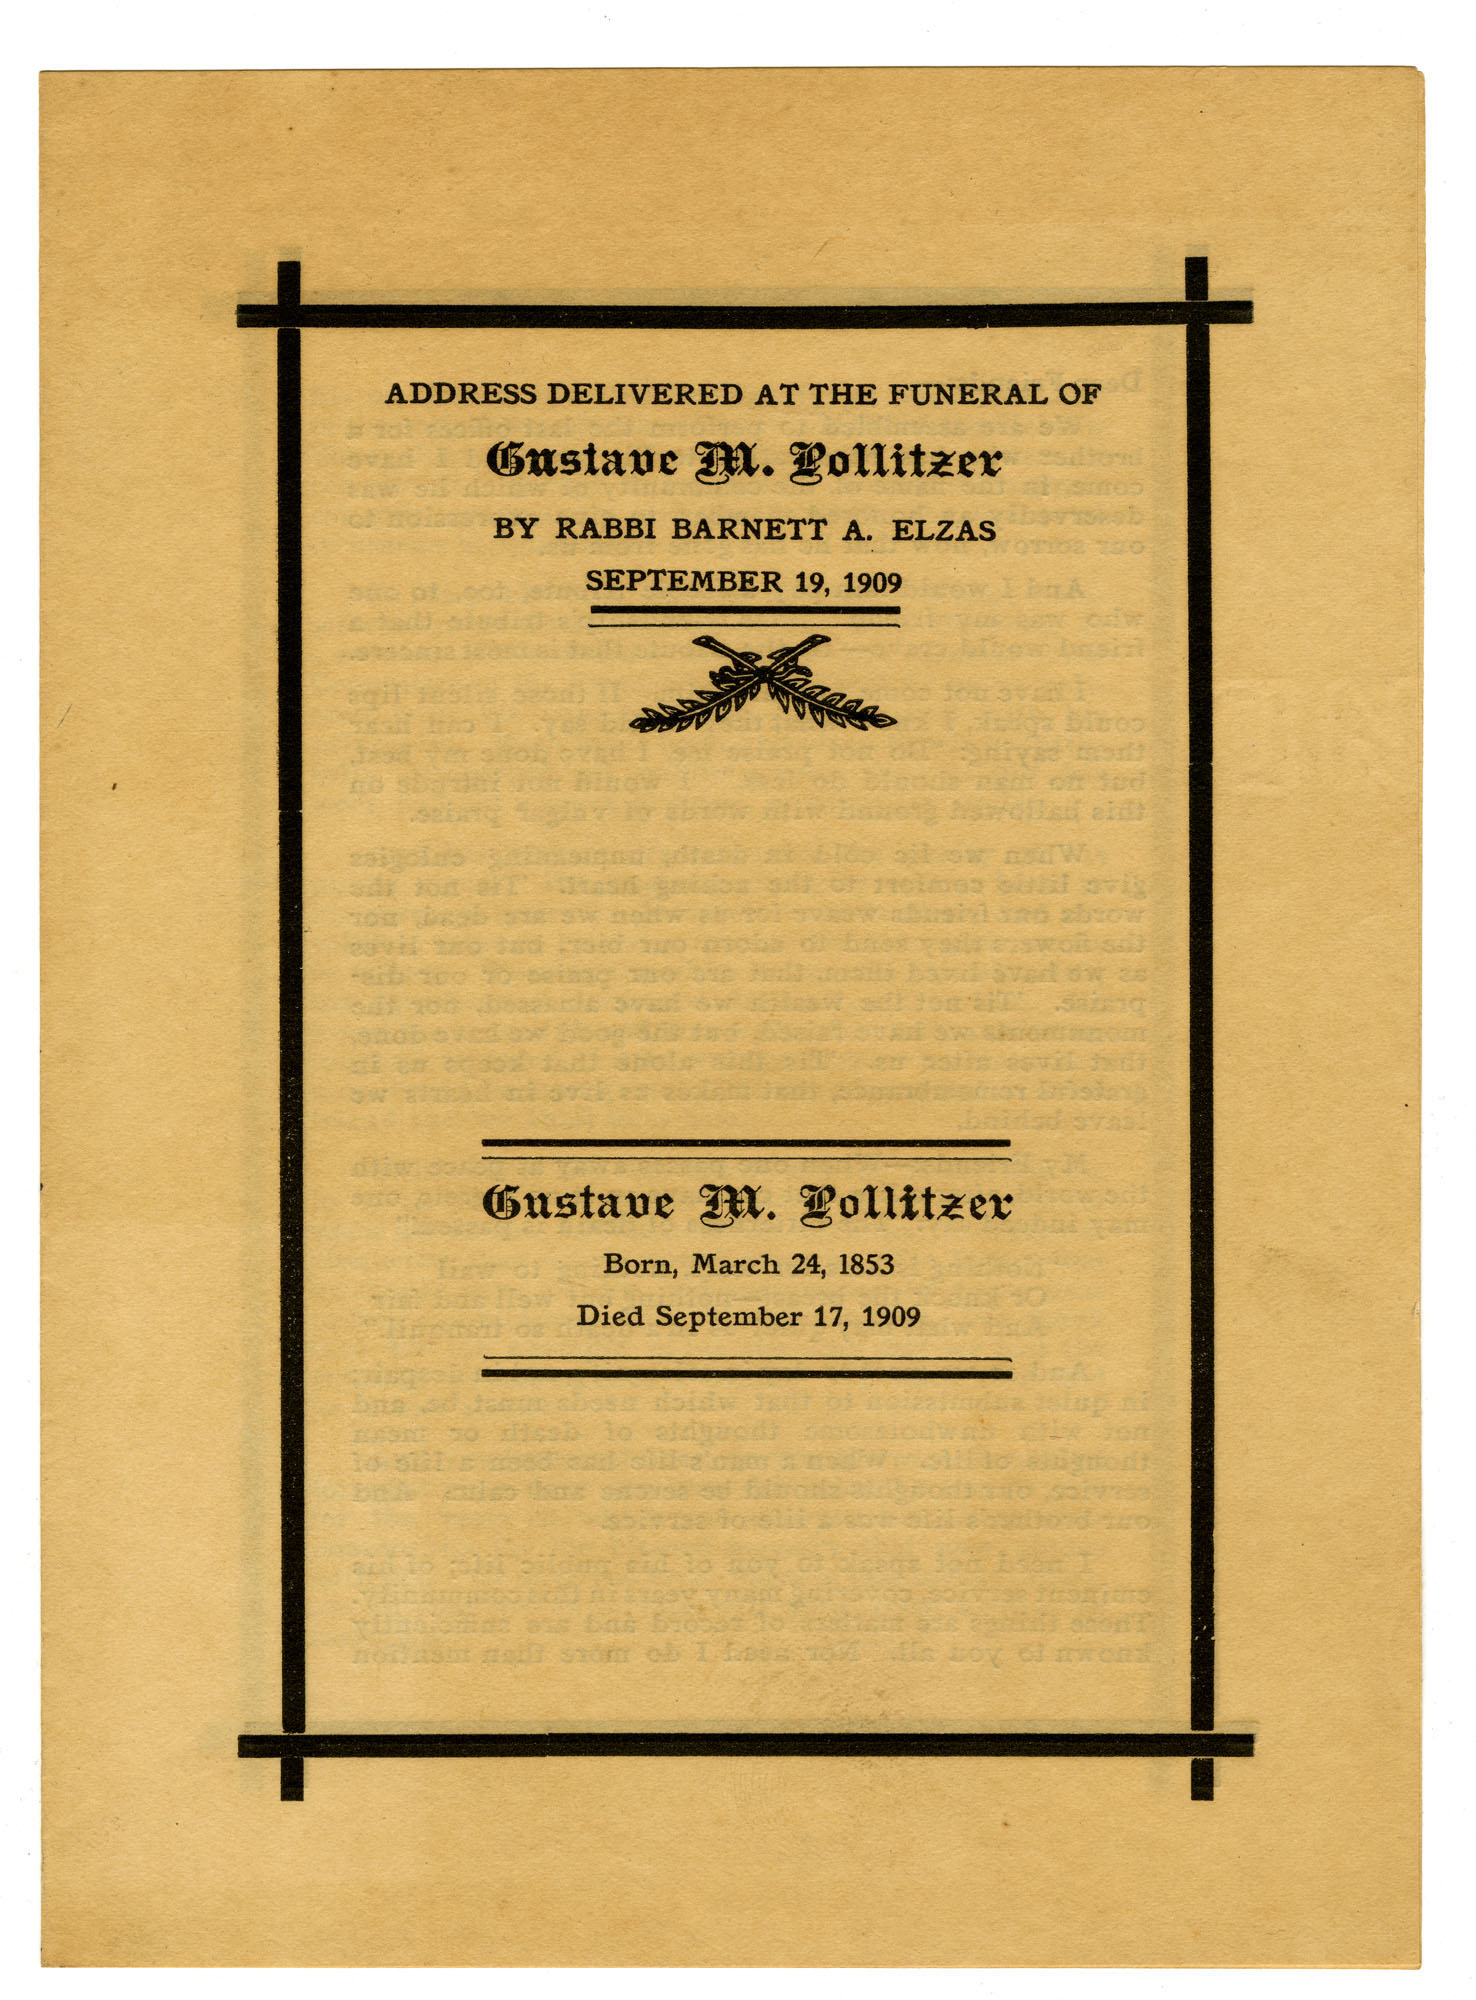 Funeral program for Gustave M. Pollitzer